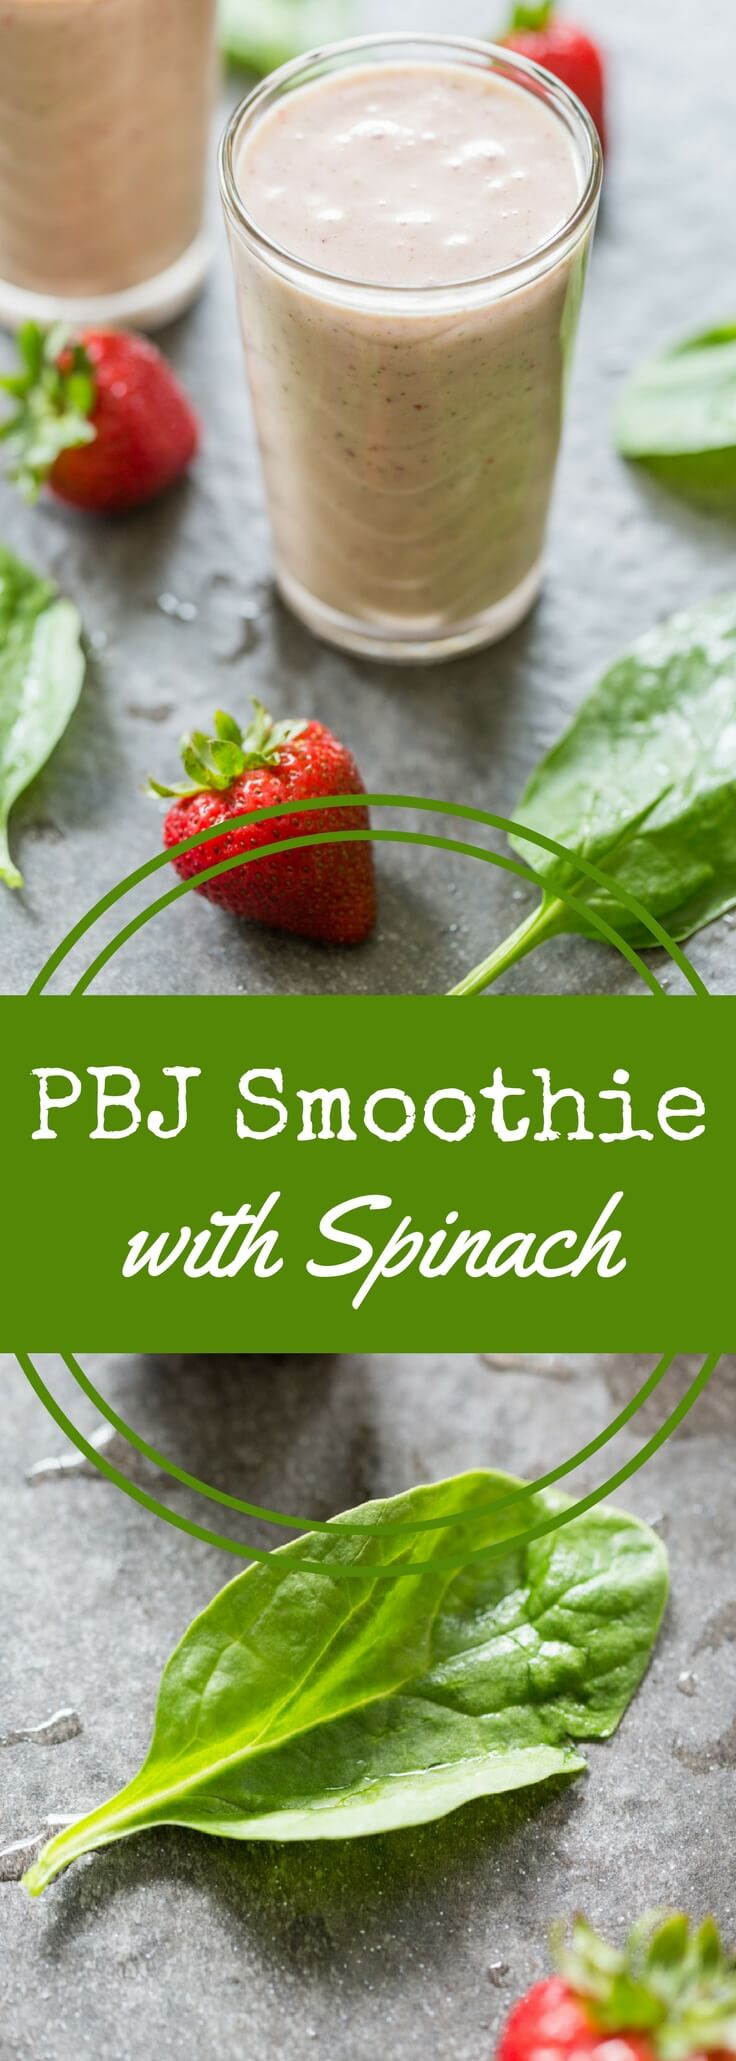 Power up your smoothie with peanut butter, jelly, bananas... and spinach!  This PBJ Spinach Banana smoothie is healthy and it tastes FANTASTIC.